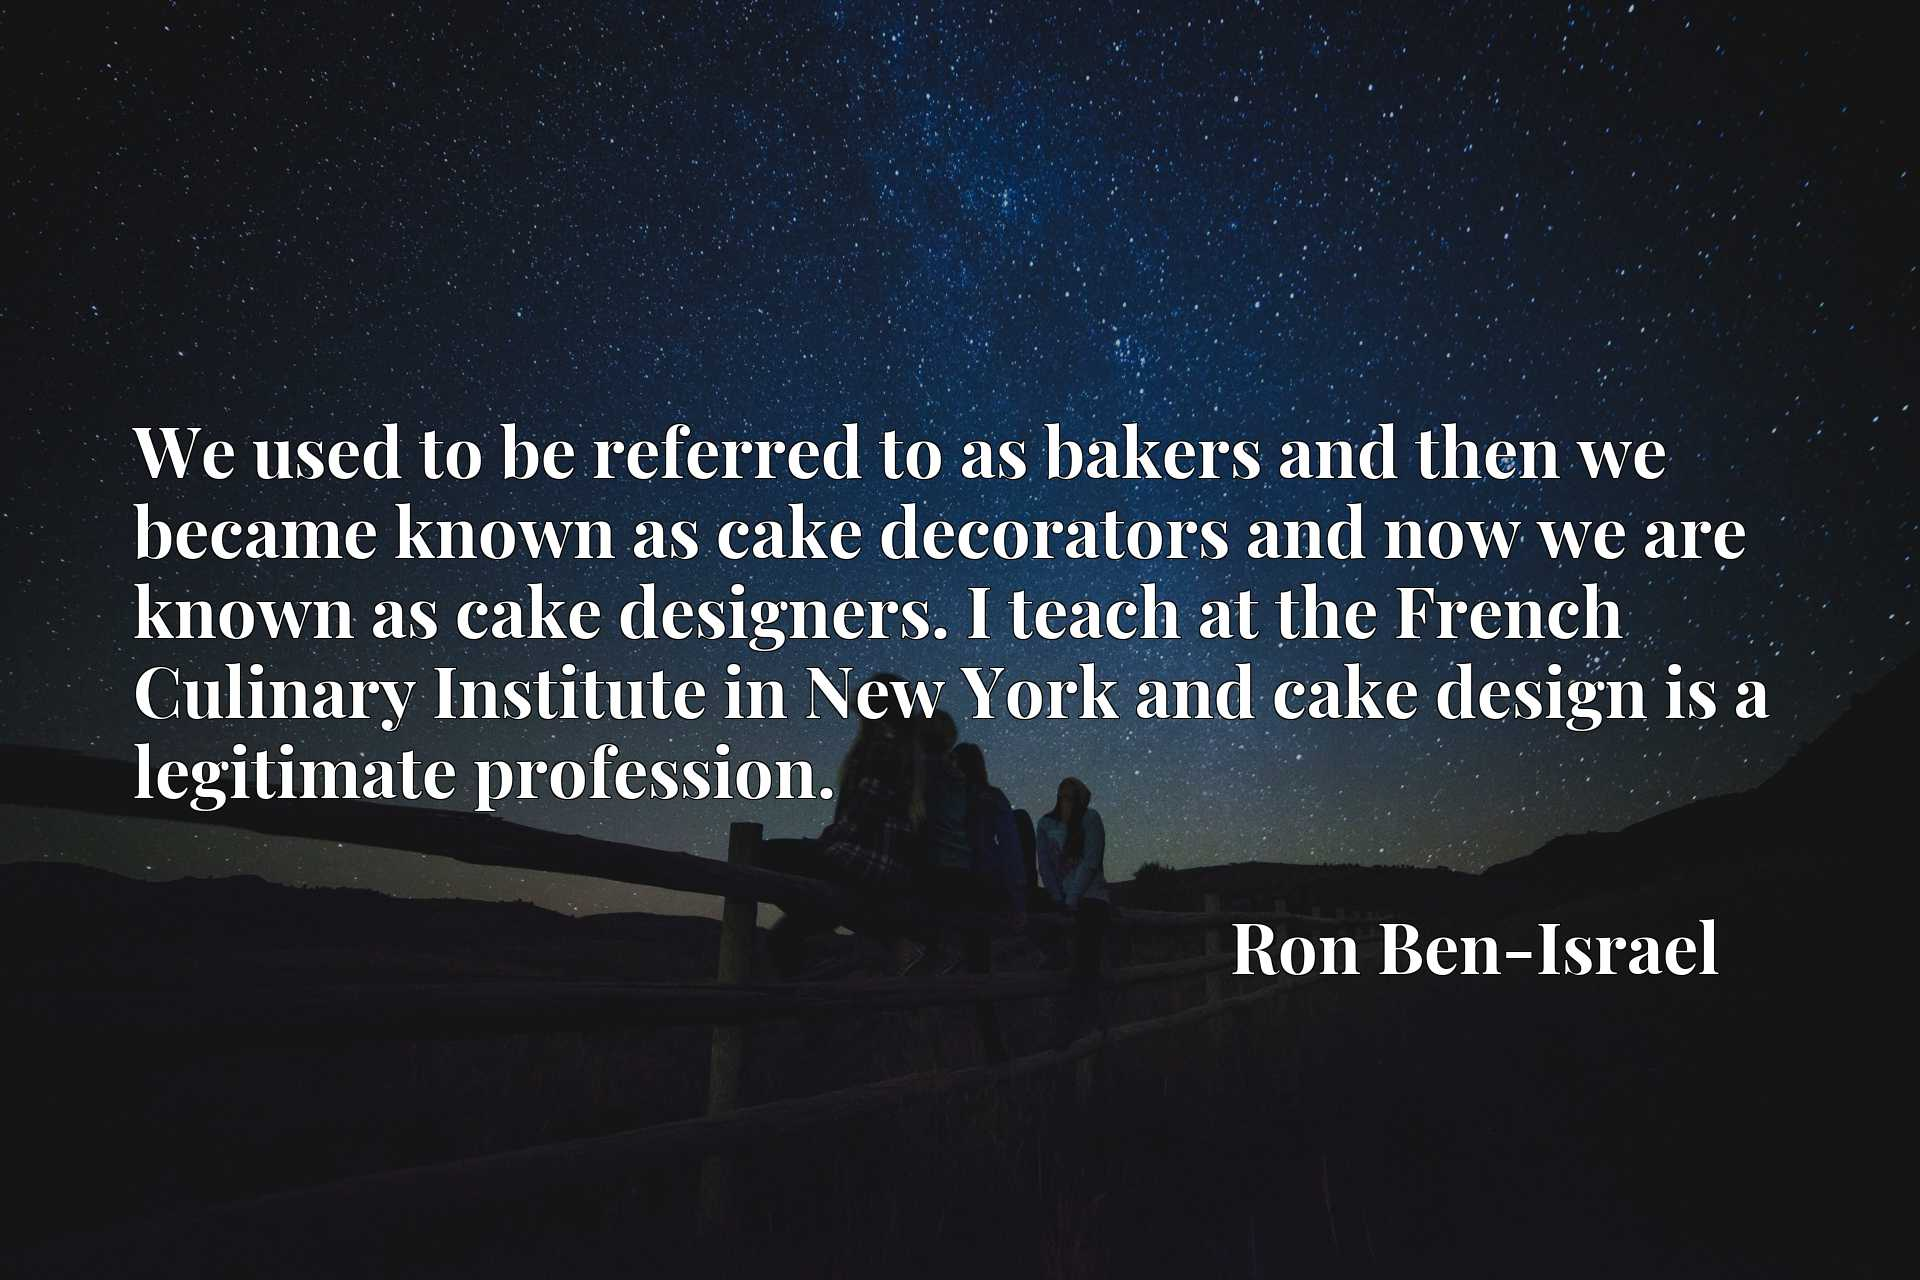 We used to be referred to as bakers and then we became known as cake decorators and now we are known as cake designers. I teach at the French Culinary Institute in New York and cake design is a legitimate profession.